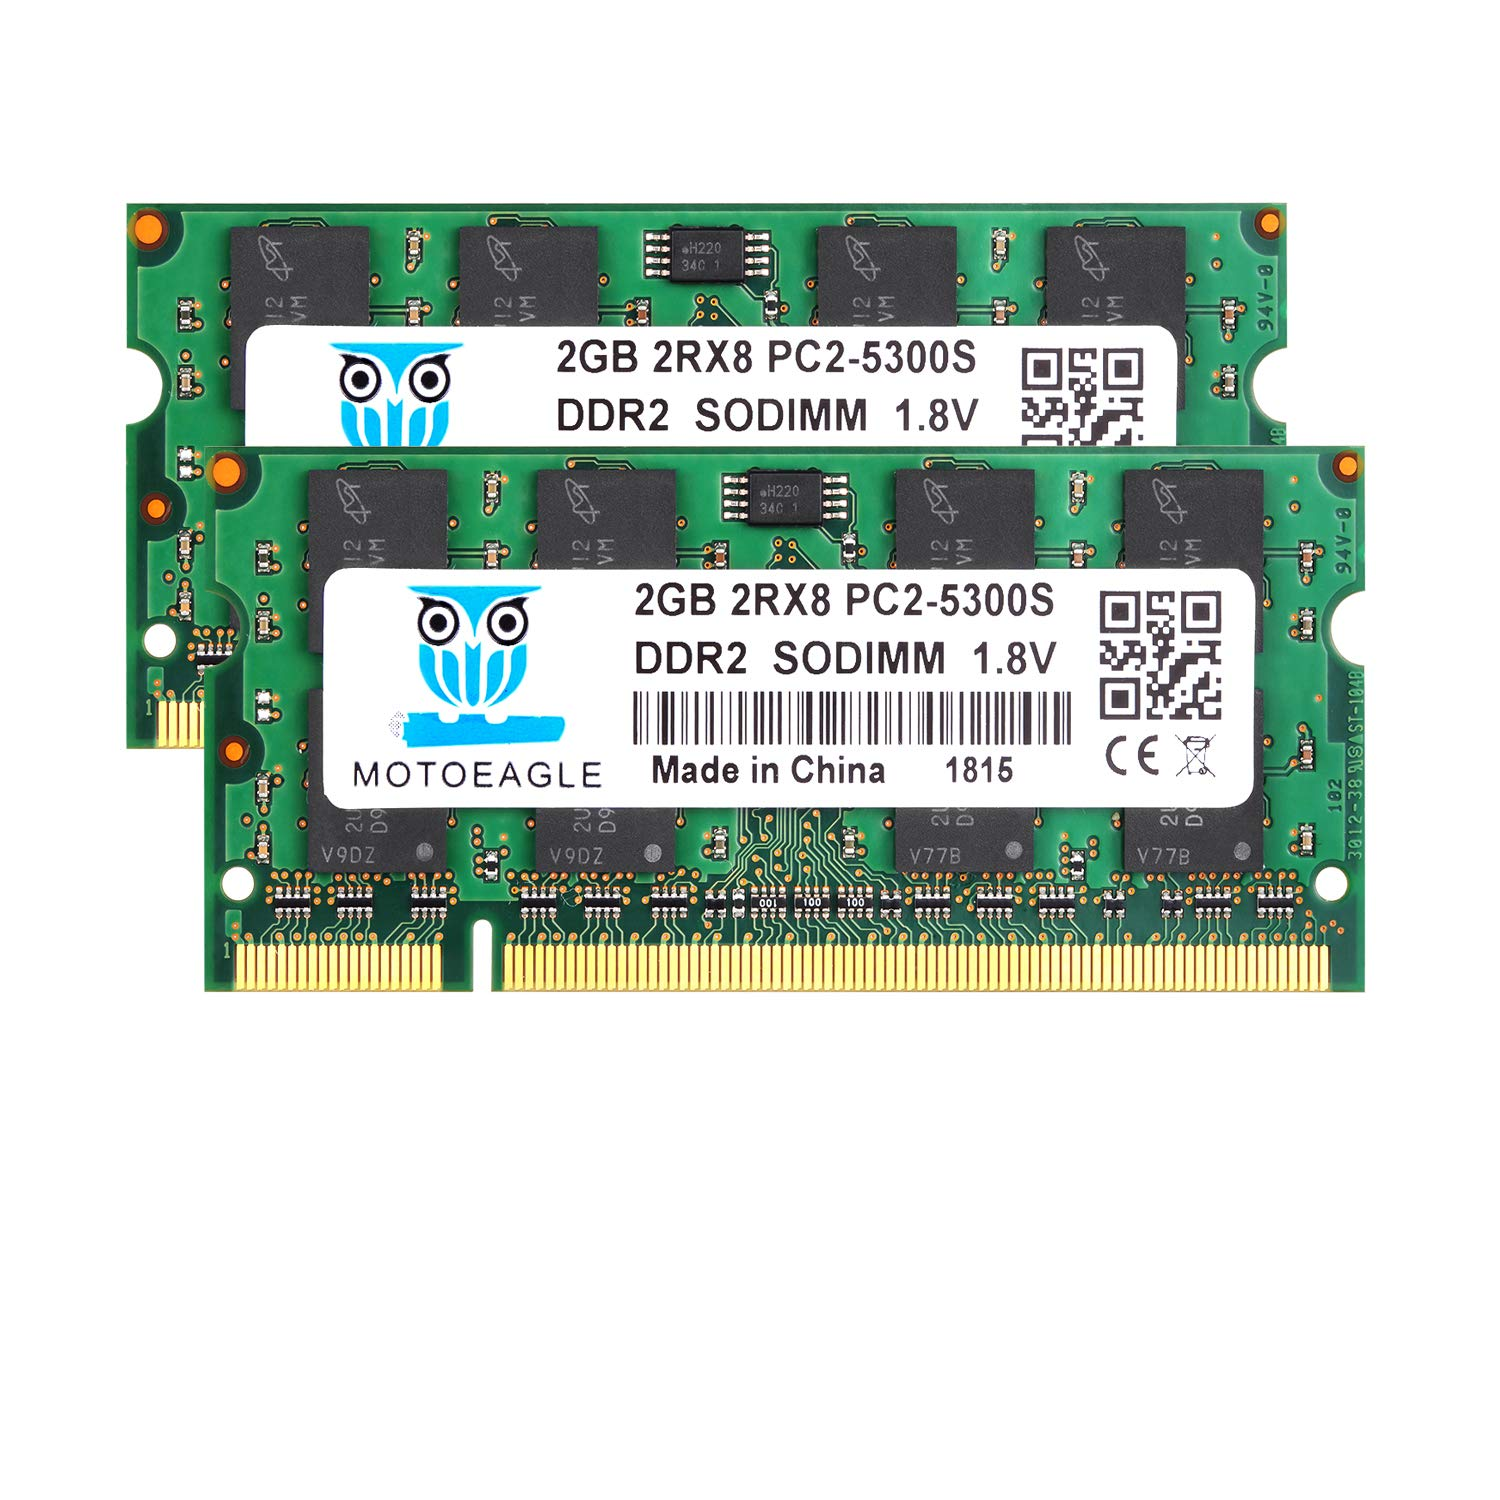 Memoria Ram 4gb Ddr2 667 Mhz Pc2-5300 (2x2gb) Sodimm Motoeagle 2rx8 Pc2-5300s Cl5